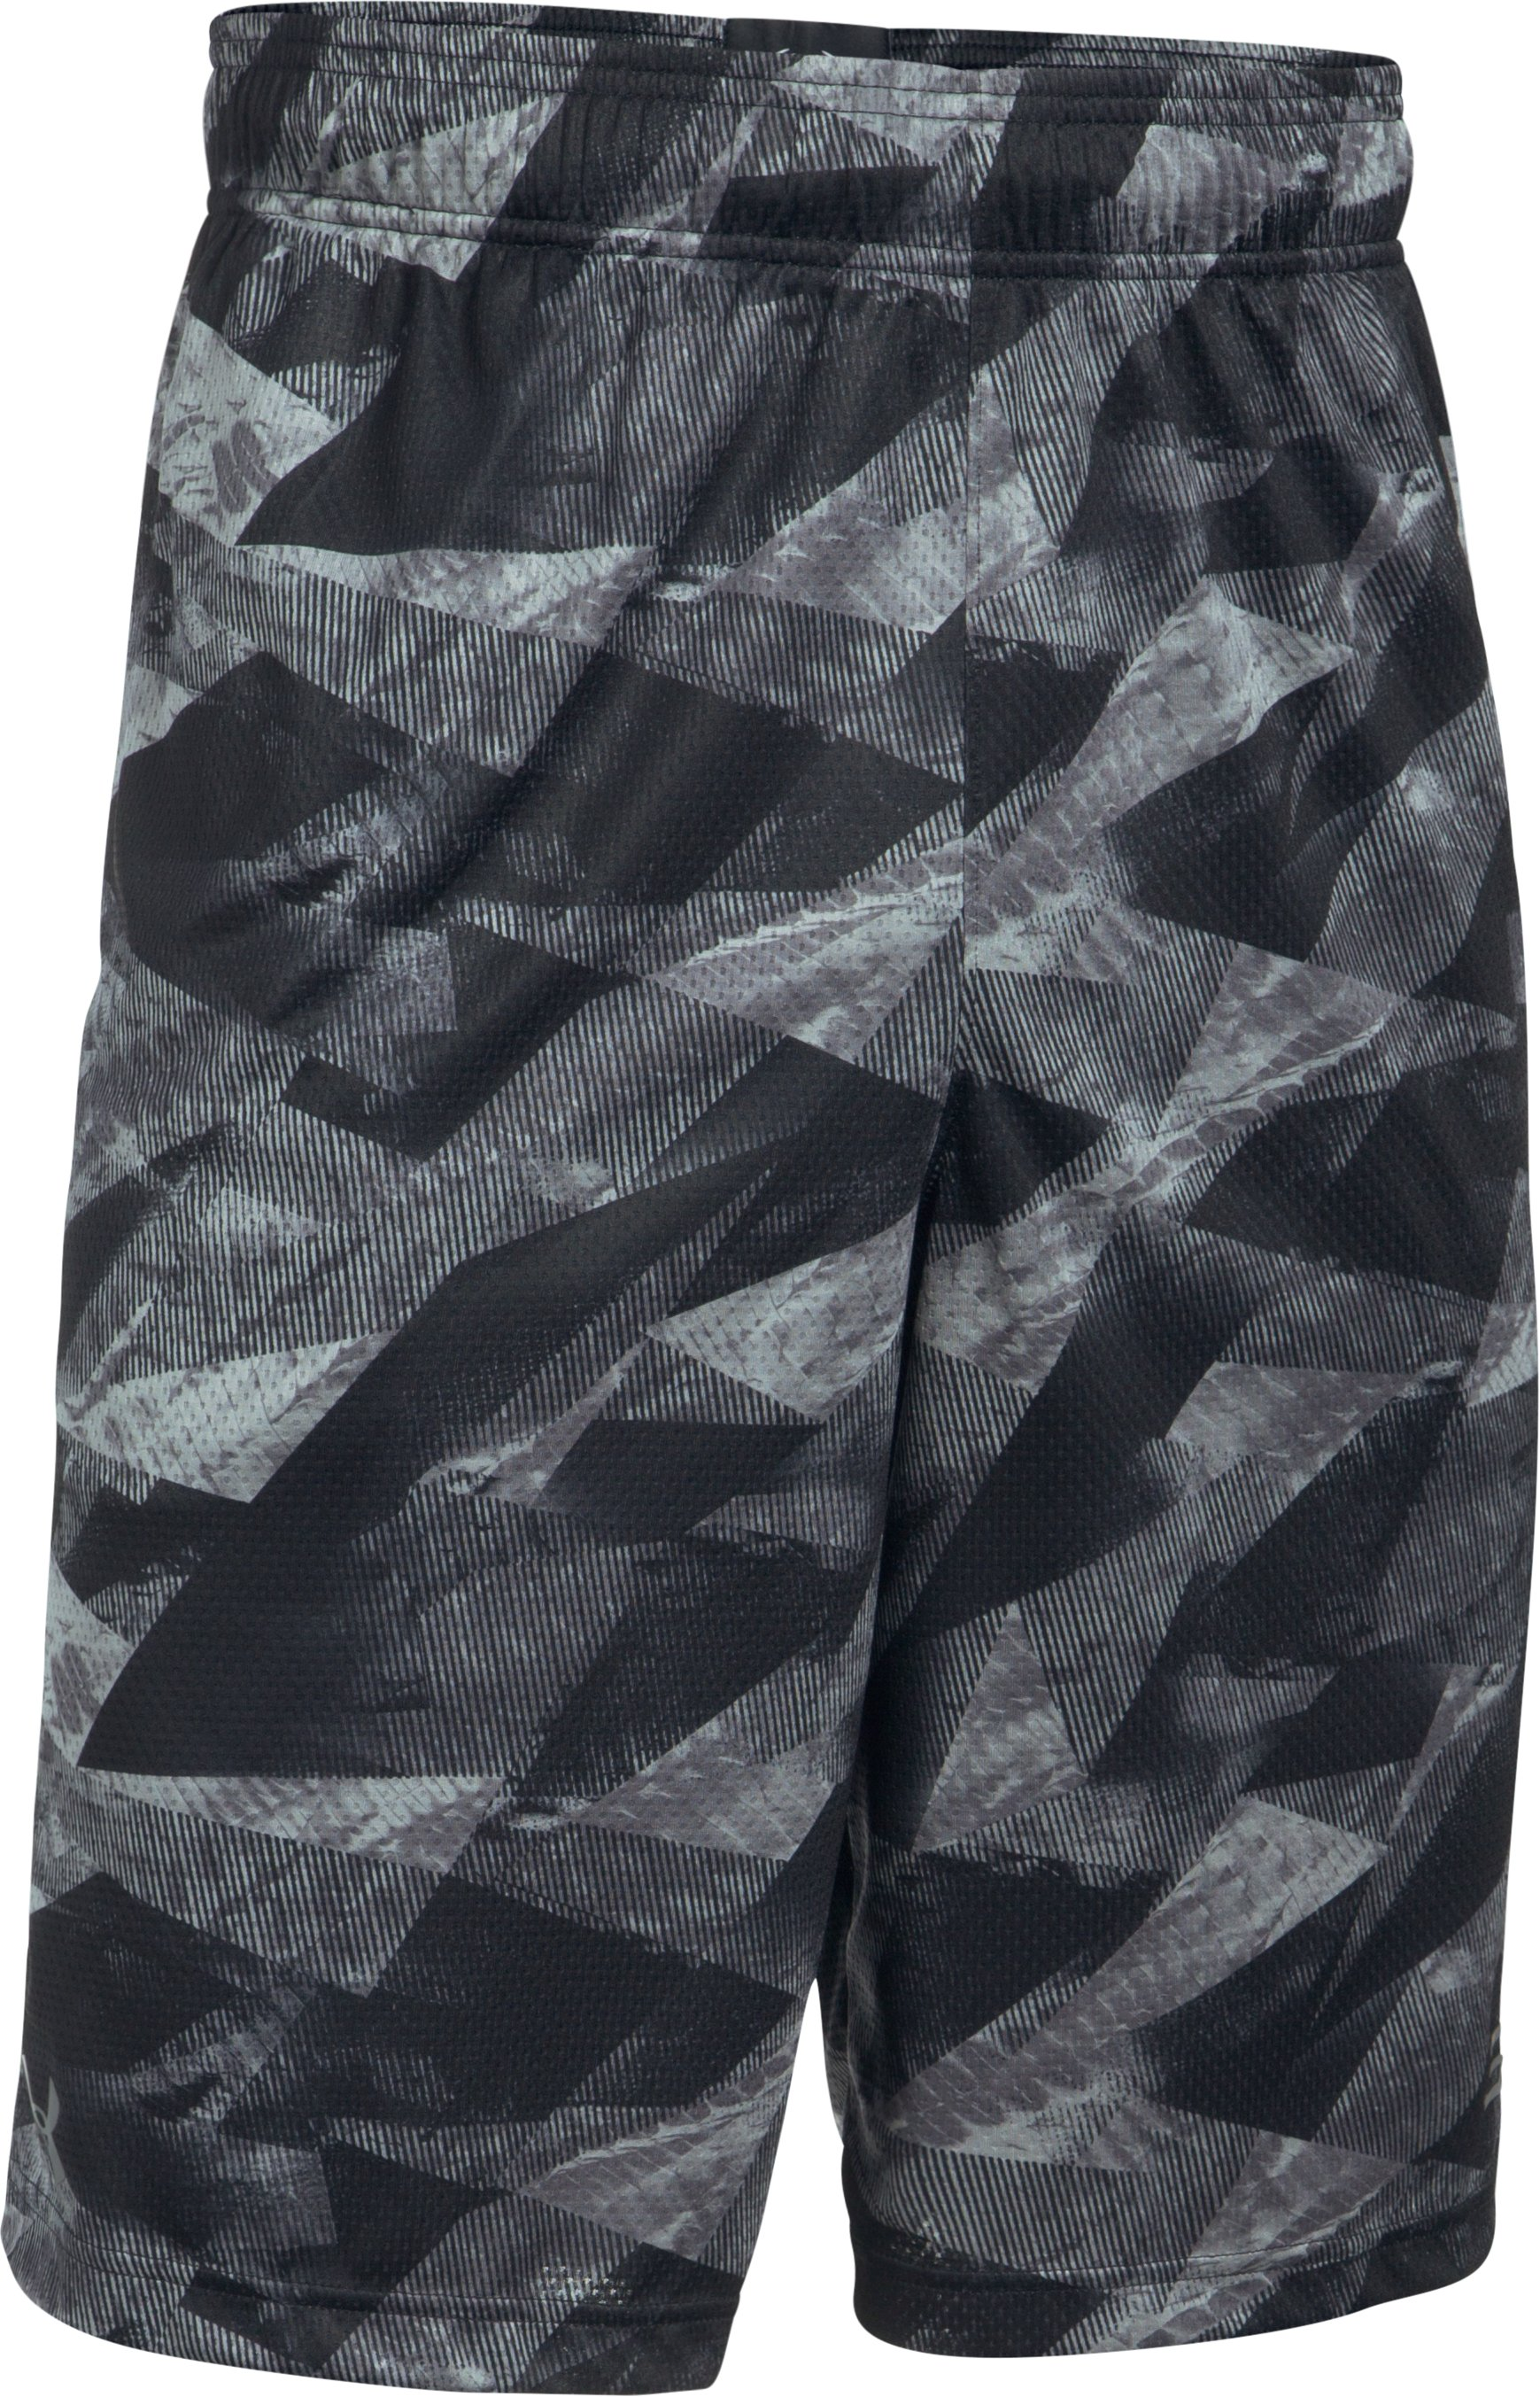 Men's SC30 Aero Wave Printed Shorts, Black , undefined